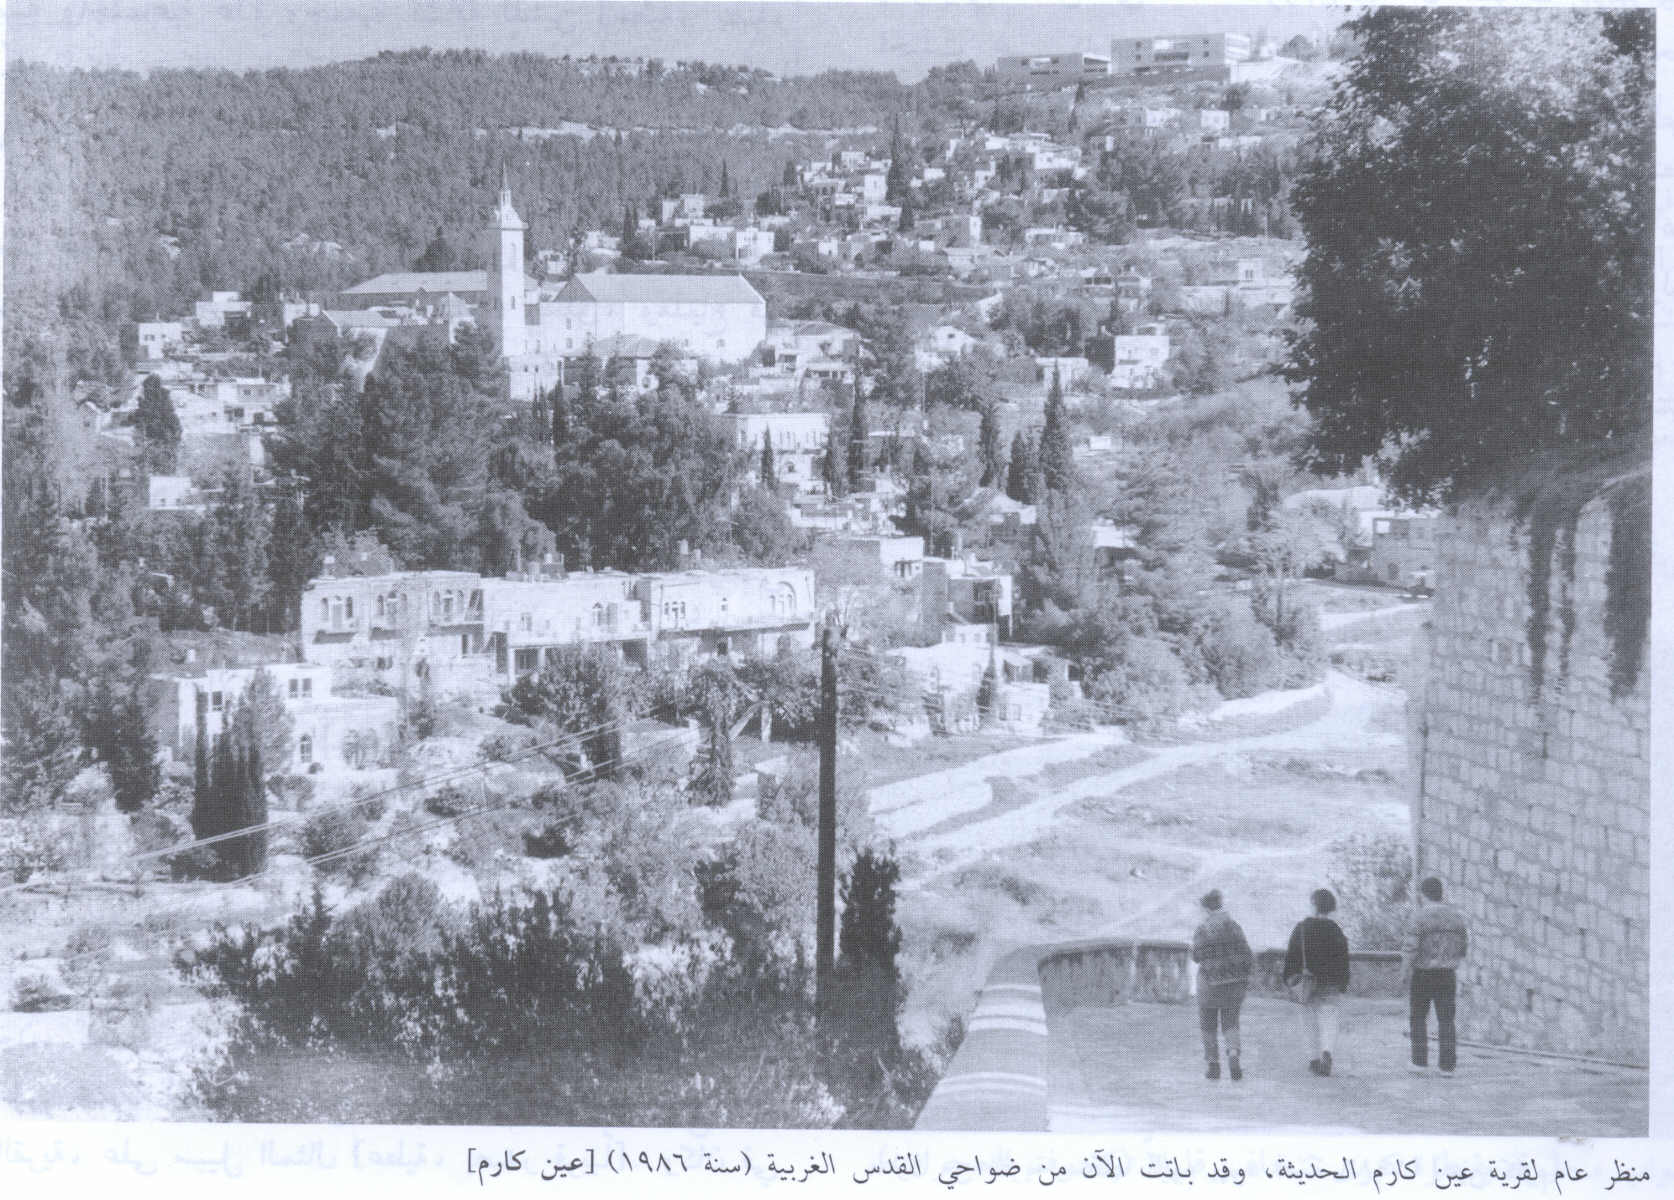 'Ayn Karim - عين كارم : A general view of the village, 1986